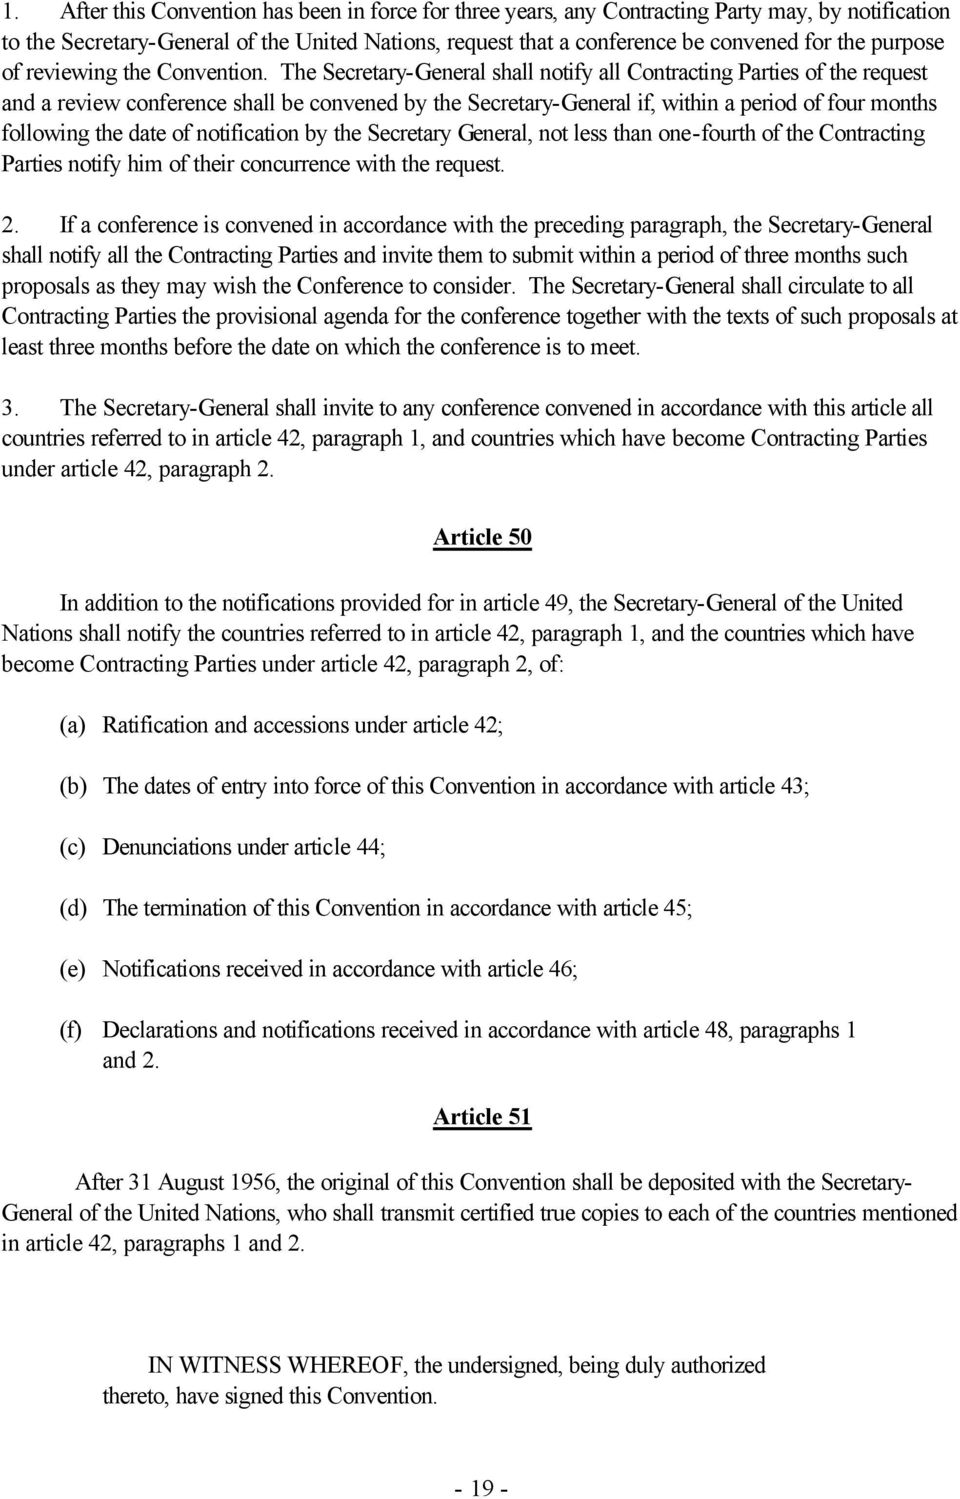 The Secretary-General shall notify all Contracting Parties of the request and a review conference shall be convened by the Secretary-General if, within a period of four months following the date of